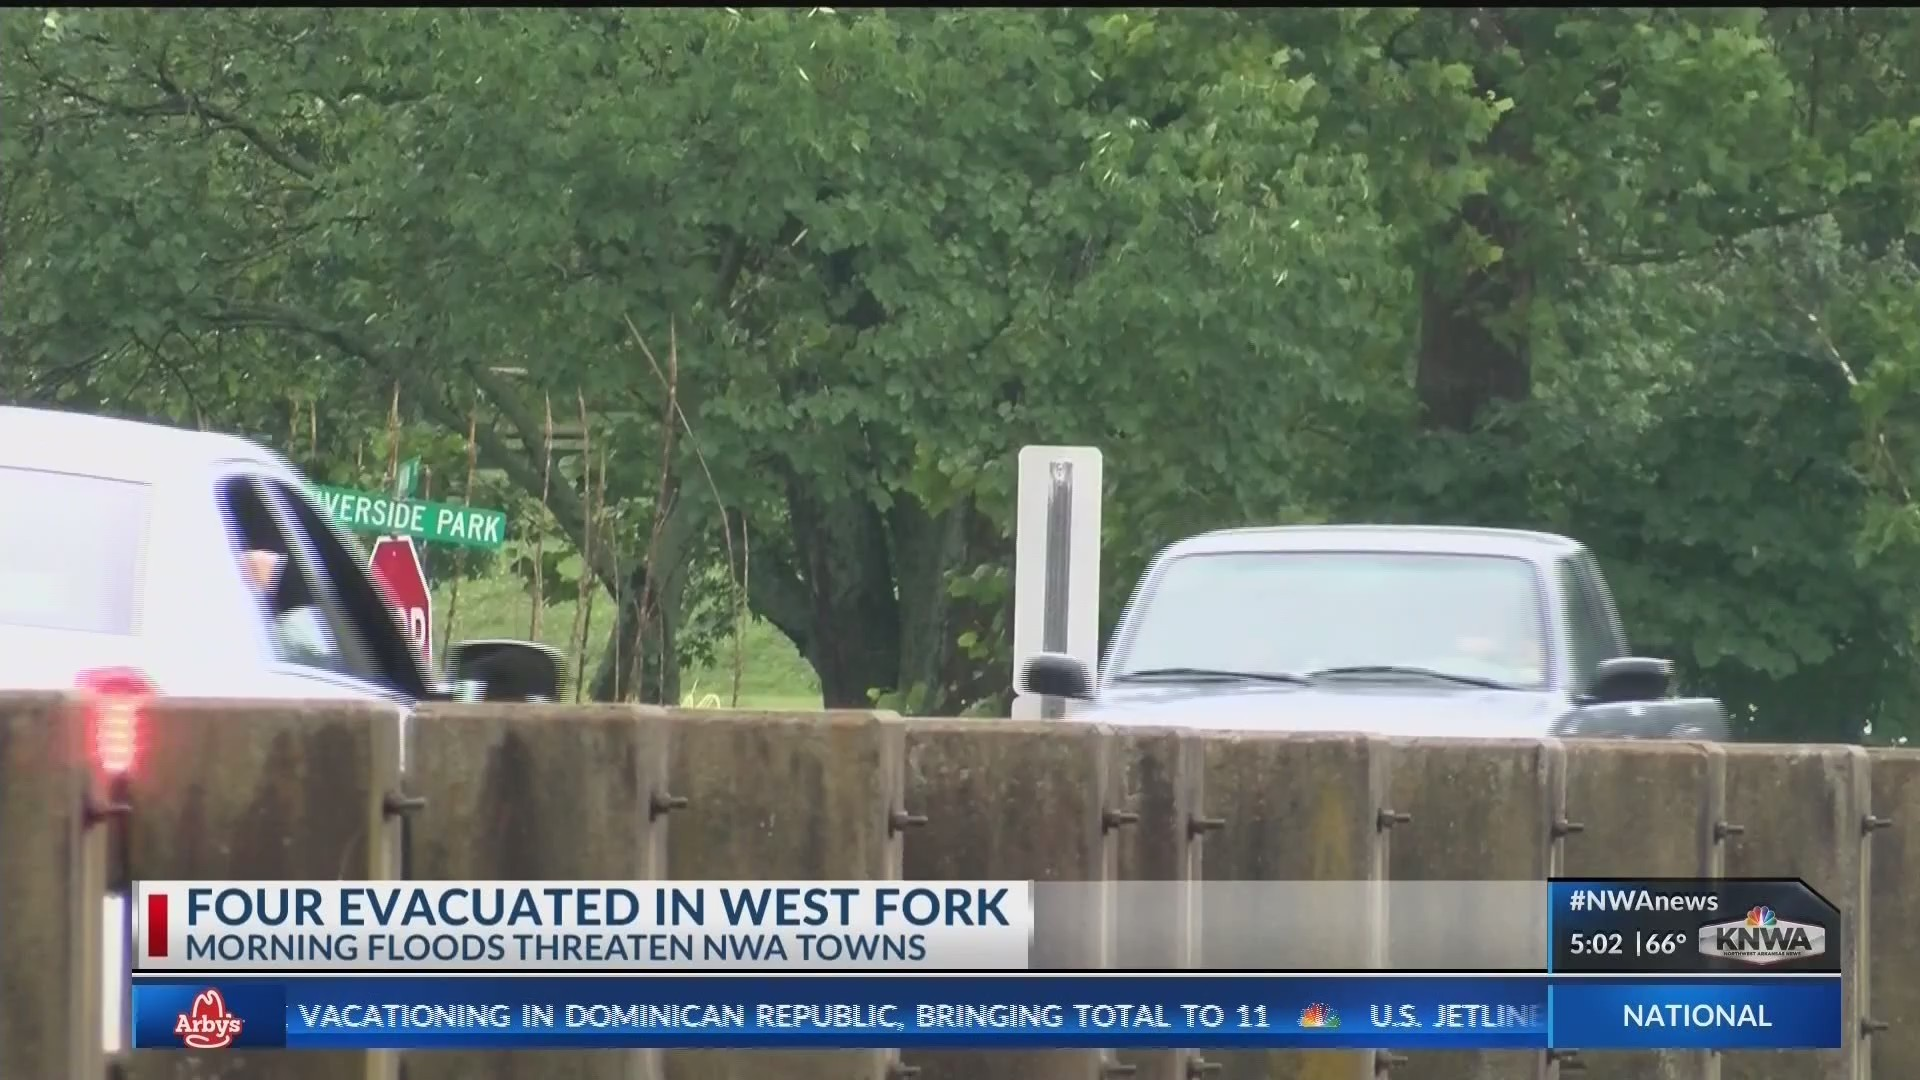 Flooding forces evacuations in West Fork (KNWA)